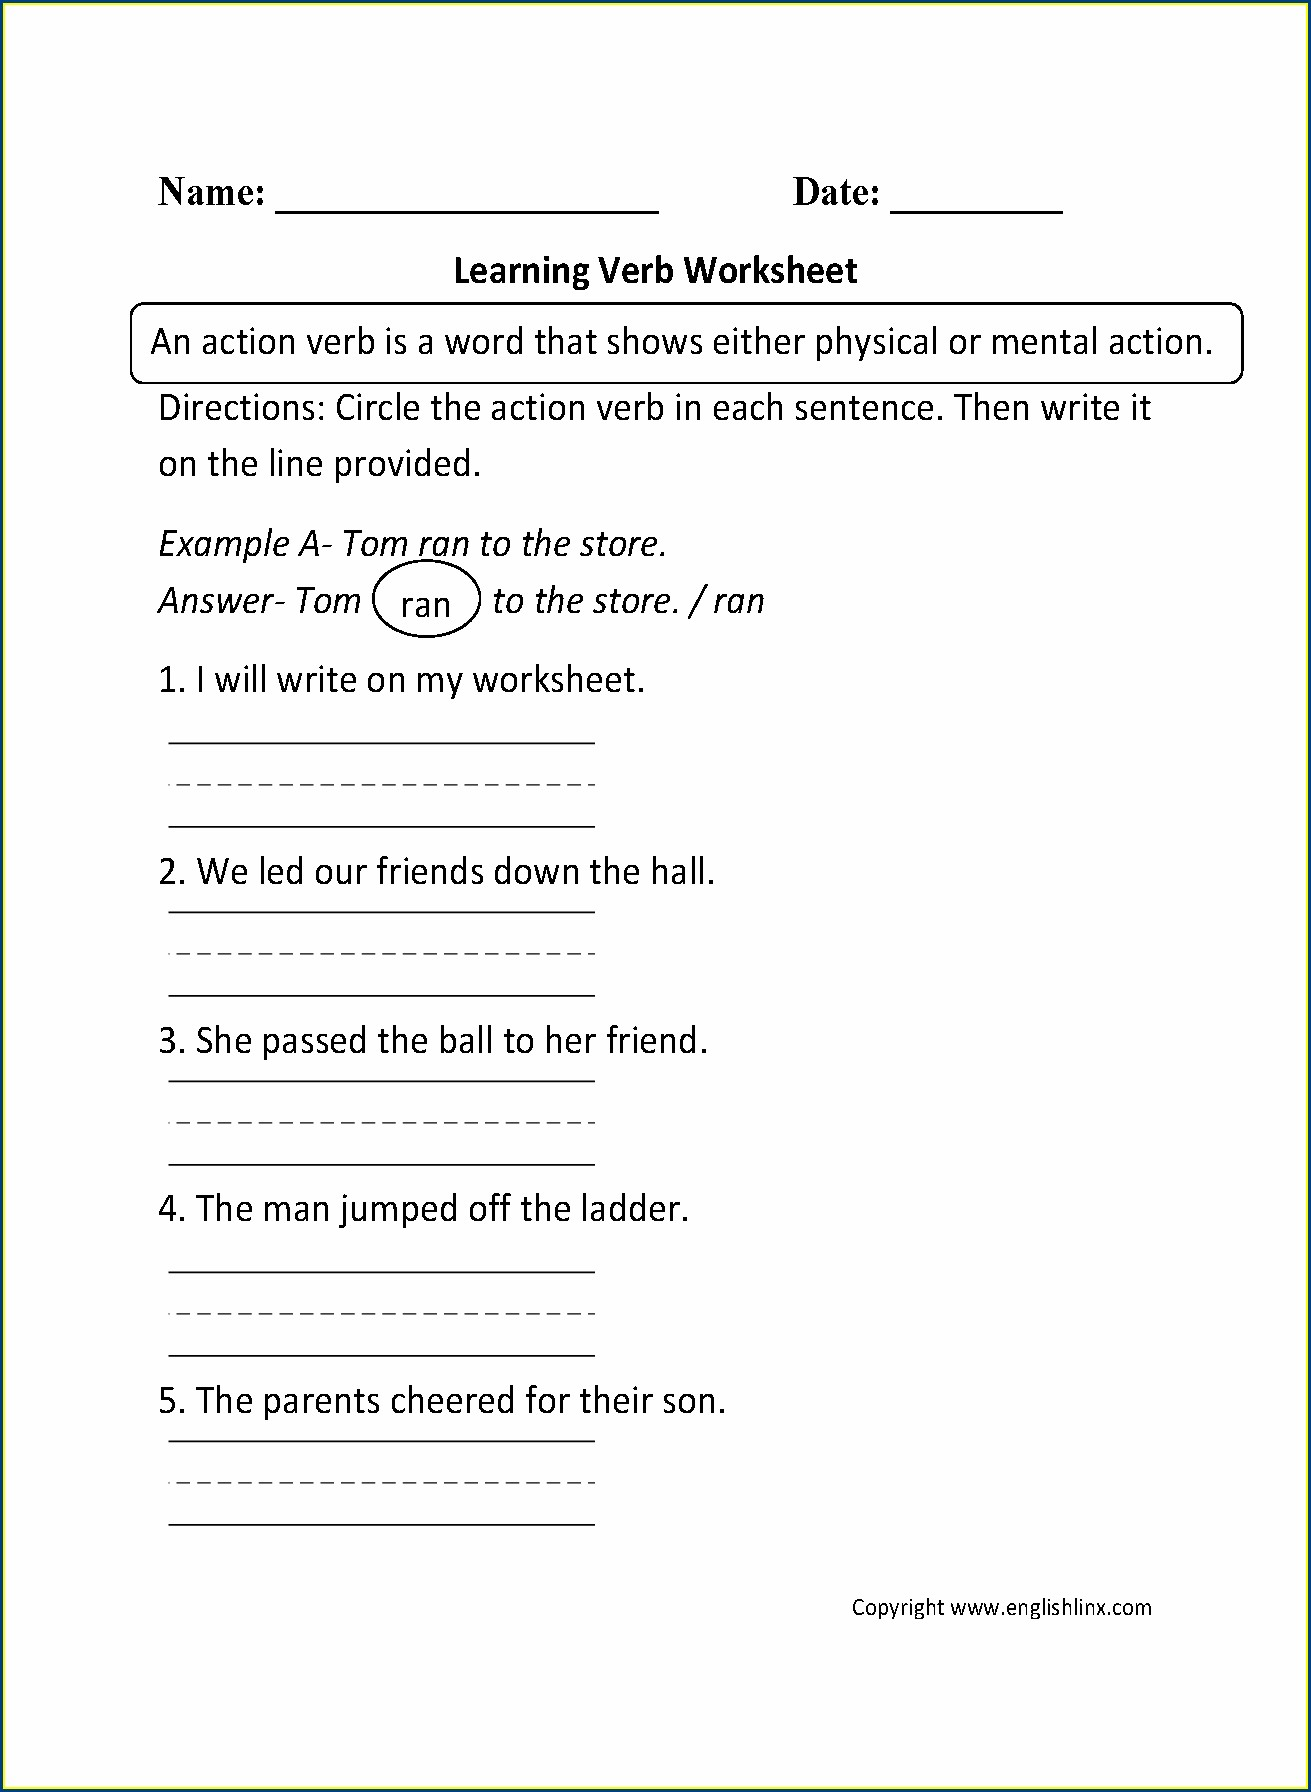 Subject Verb Agreement Worksheet Answers